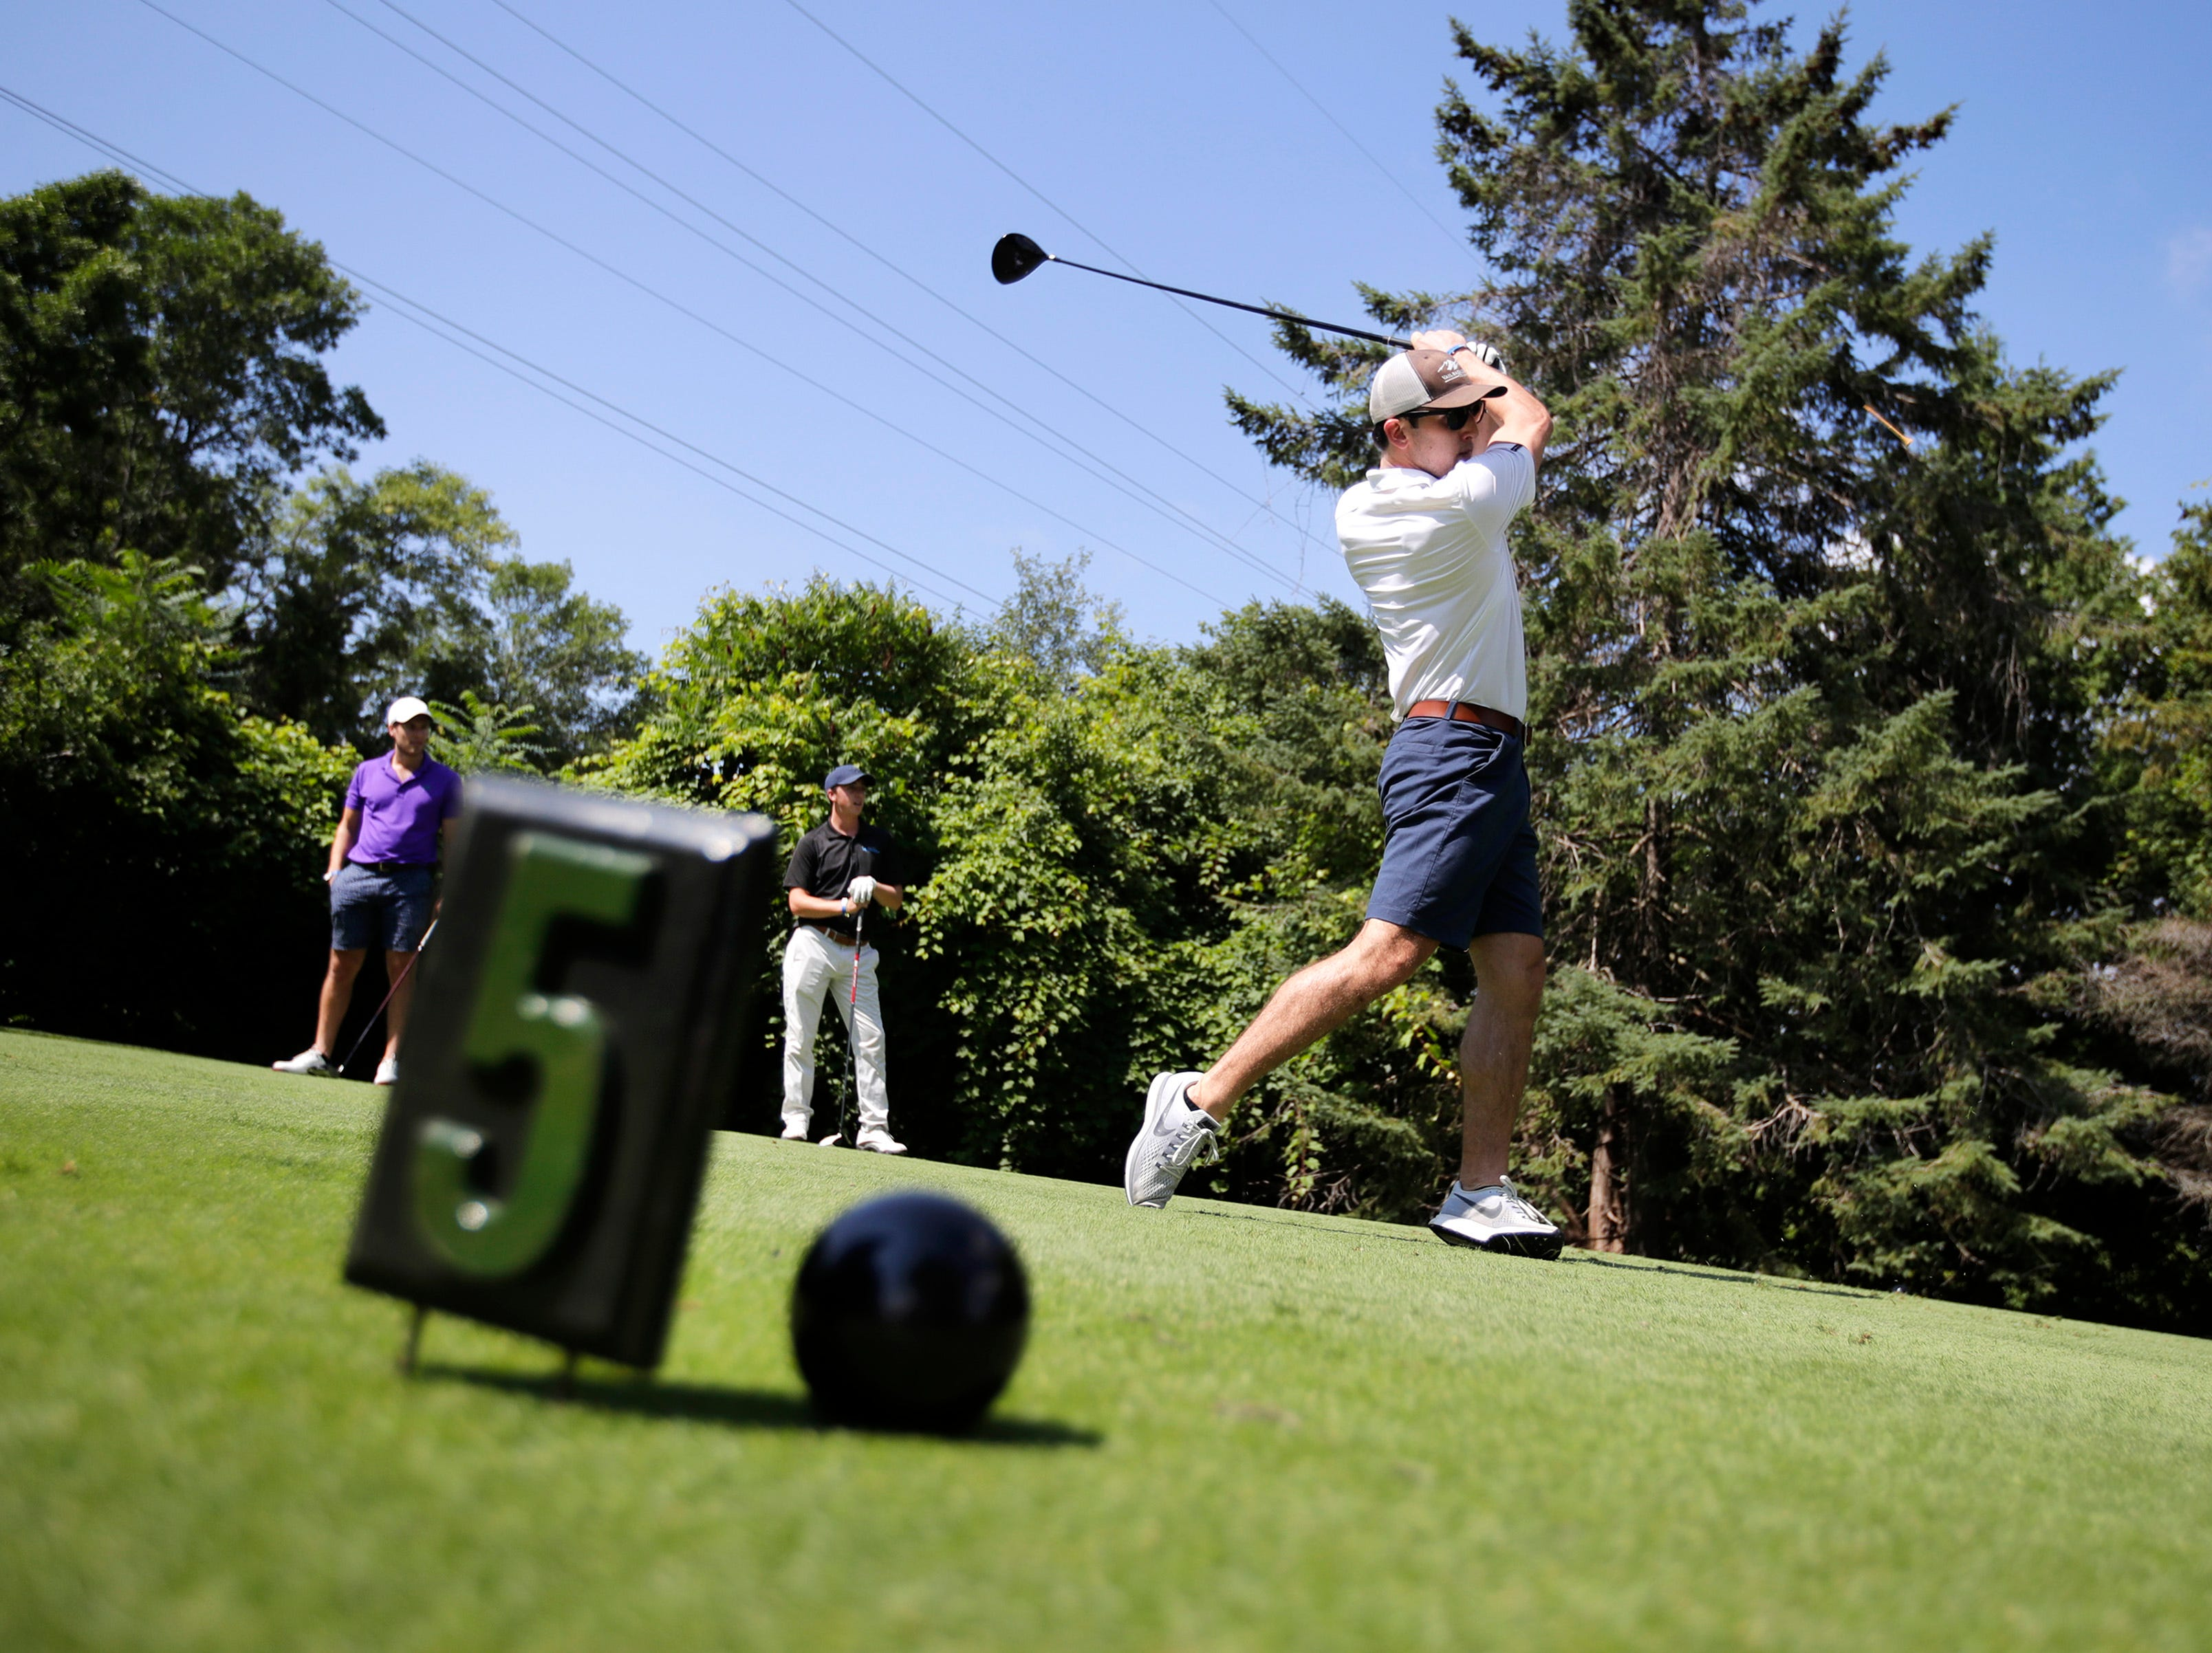 Thomas Schelble tees off during the U.S. Venture Open Wednesday, Aug. 8, 2018, at North Shore Golf Club in Menasha, Wis.Danny Damiani/USA TODAY NETWORK-Wisconsin